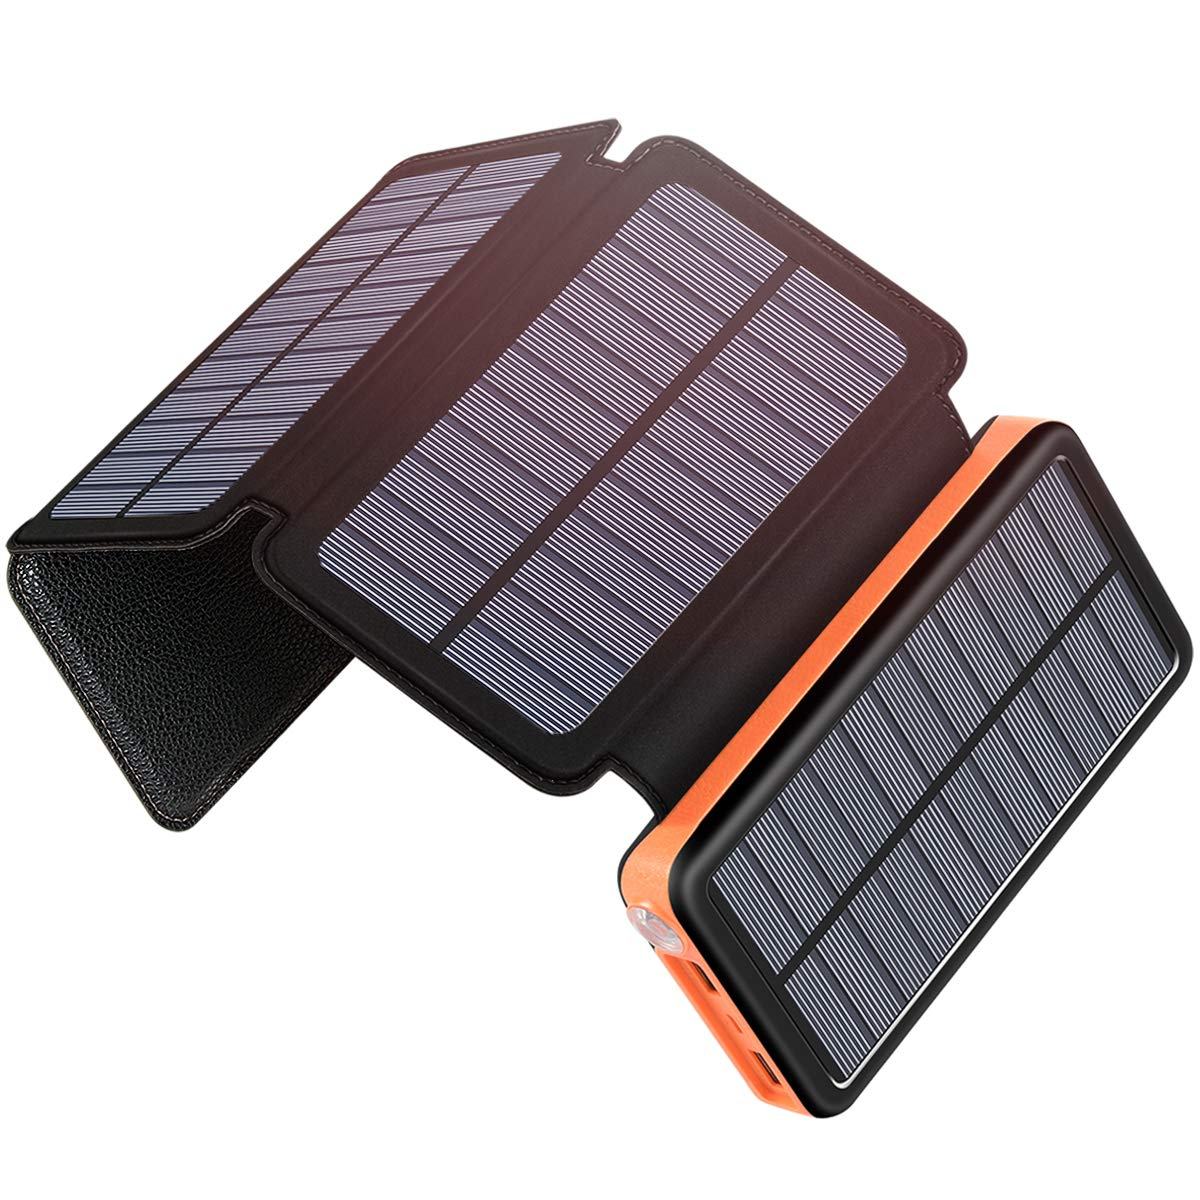 Solar Charger 25000mAh, SOARAISE Power Bank with 4 Solar Panels and Type-C Port Waterproof Battery Pack for Smartphone, Tablet and Camping by SOARAISE